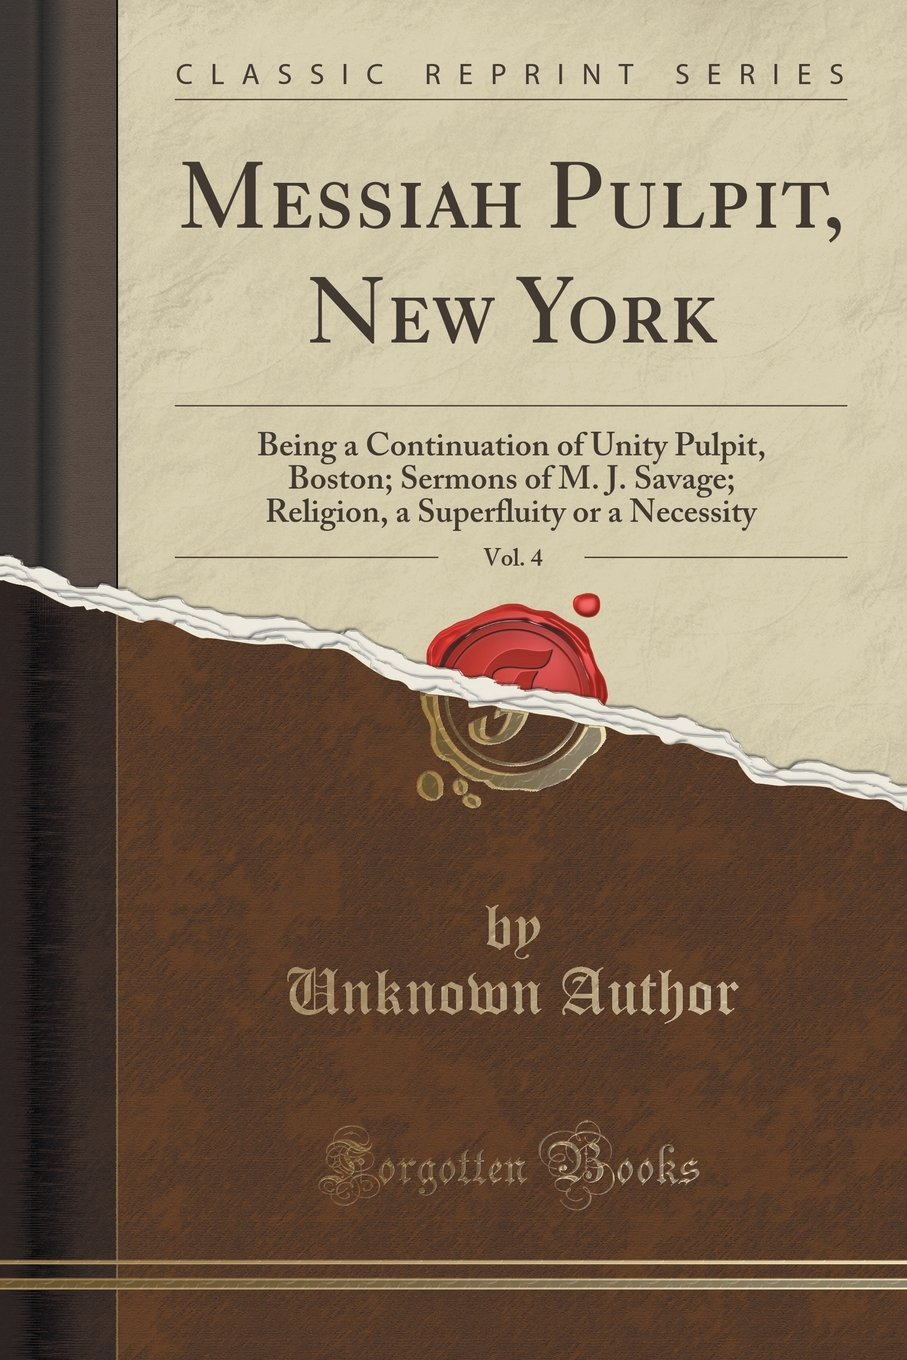 Download Messiah Pulpit, New York, Vol. 4: Being a Continuation of Unity Pulpit, Boston; Sermons of M. J. Savage; Religion, a Superfluity or a Necessity (Classic Reprint) pdf epub